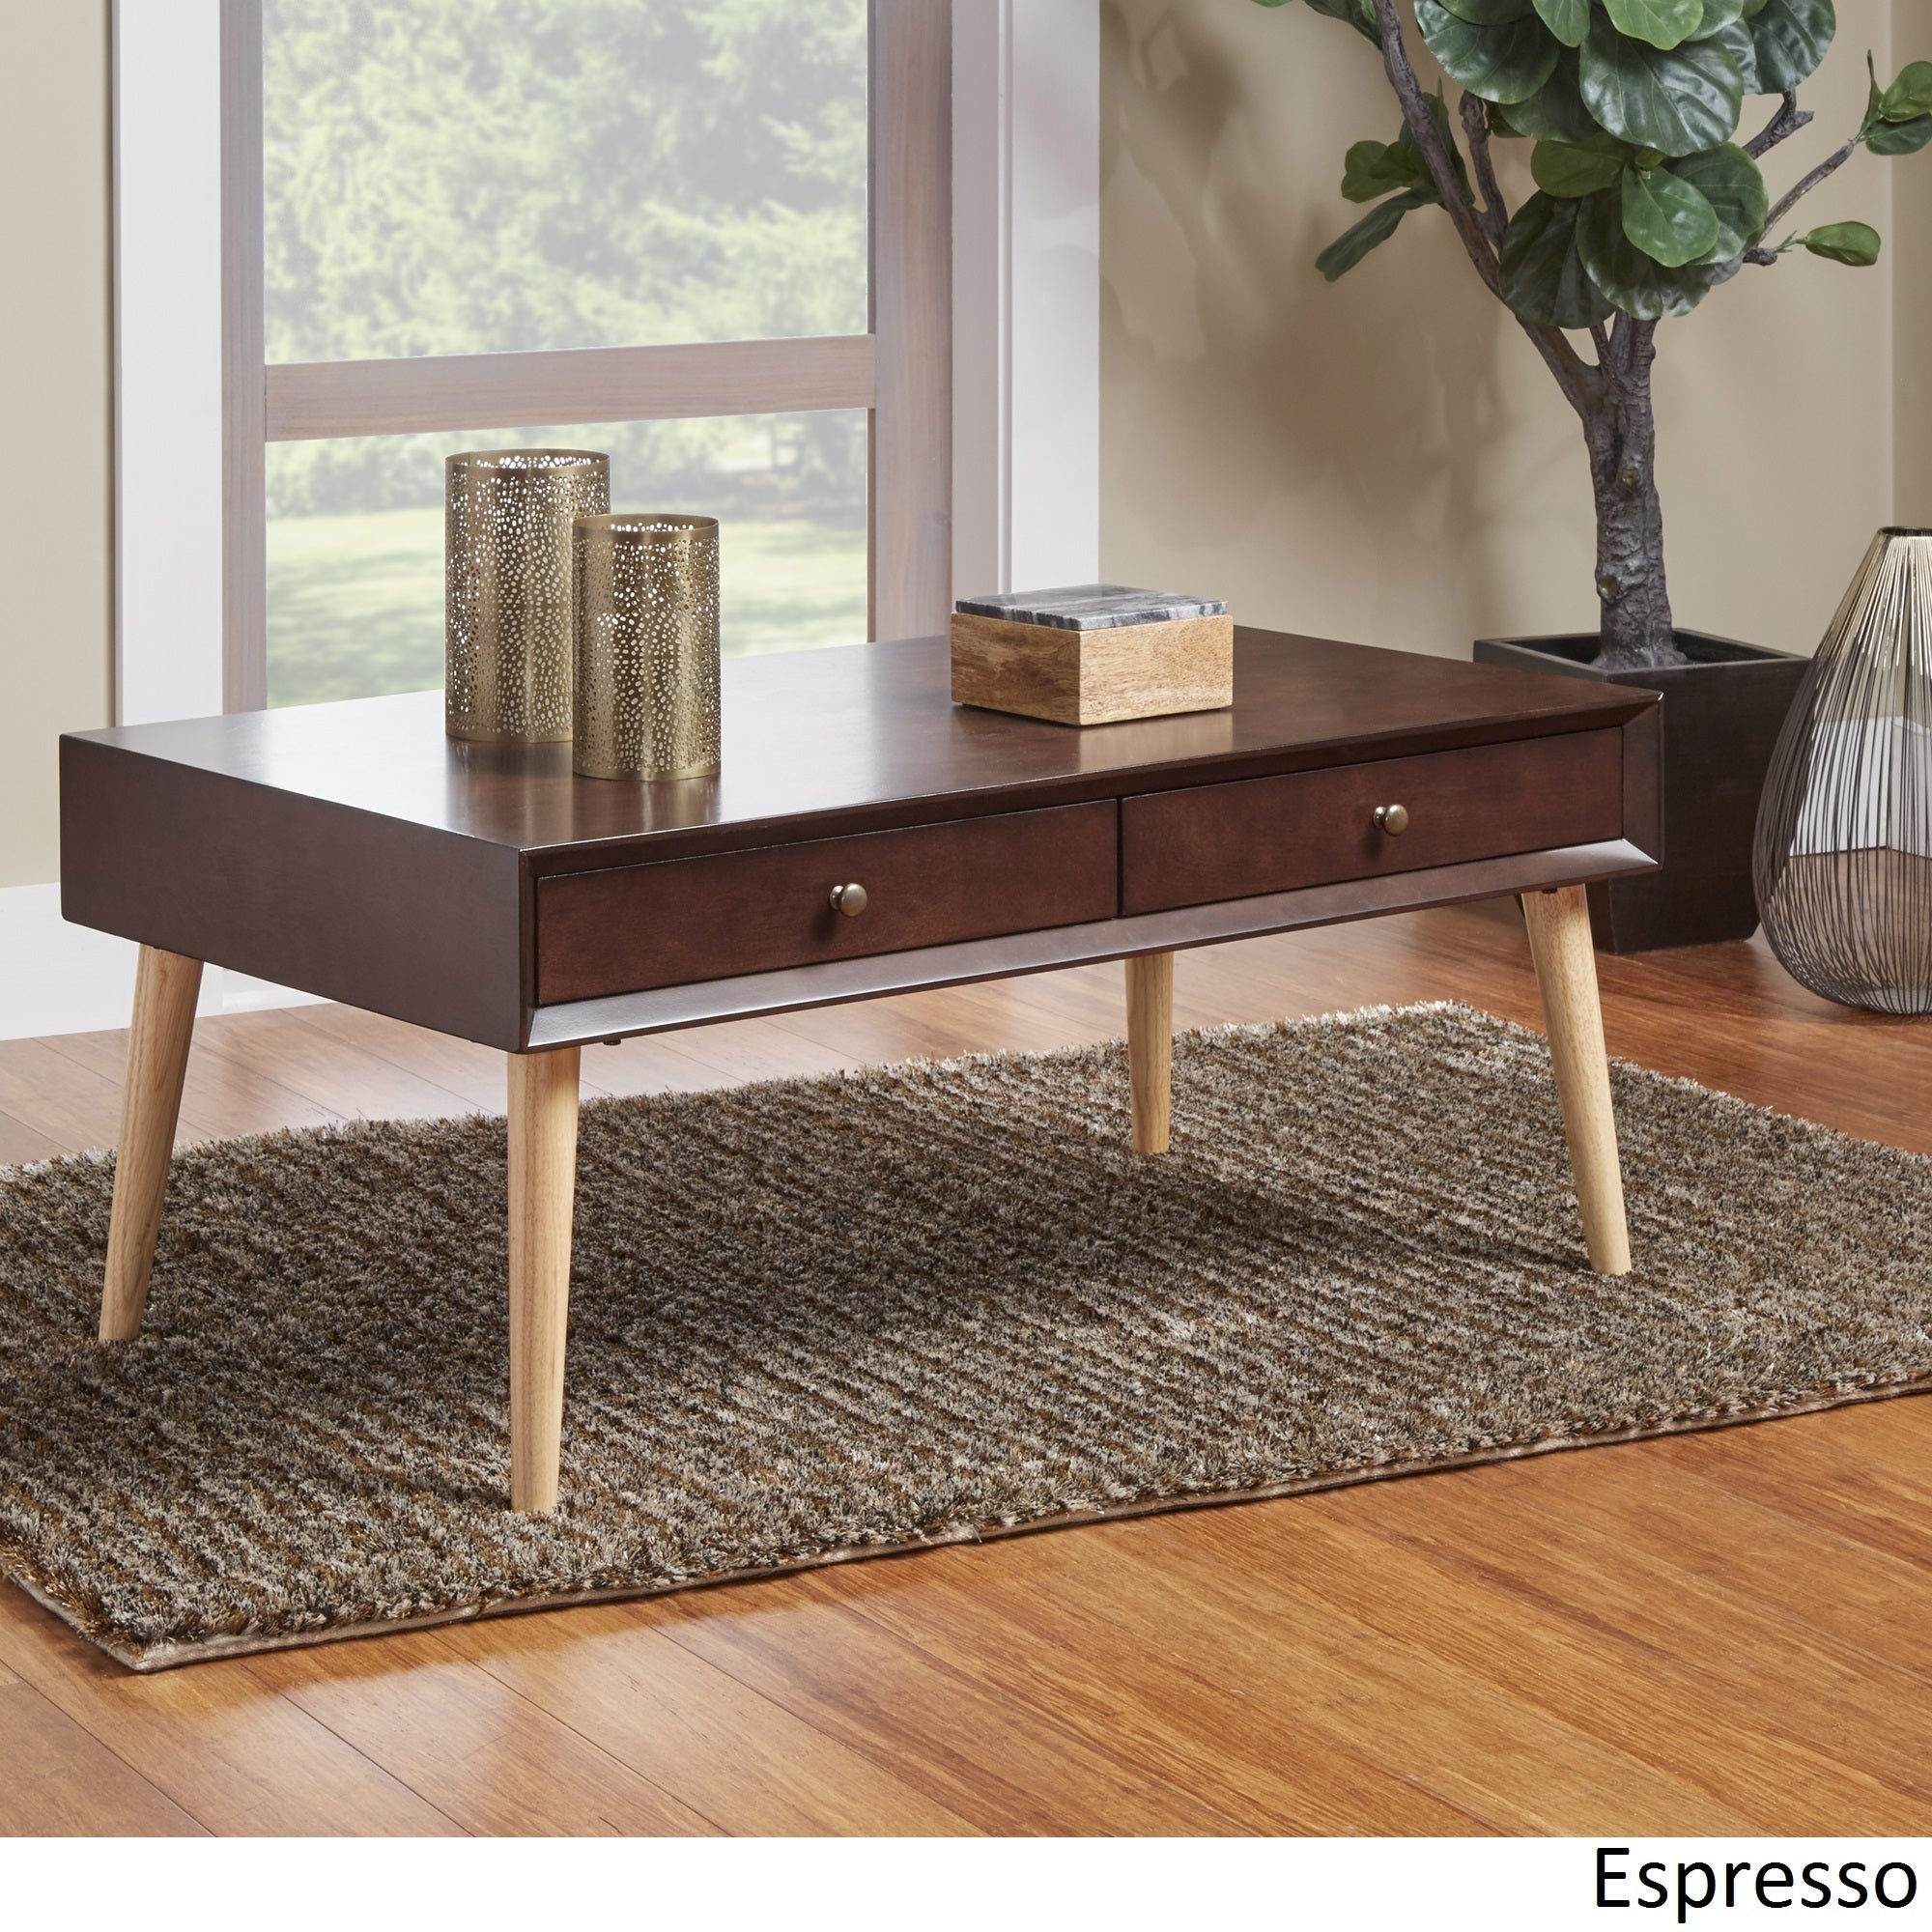 Marin Danish Modern 2-drawer Accent Coffee Table INSPIRE Q